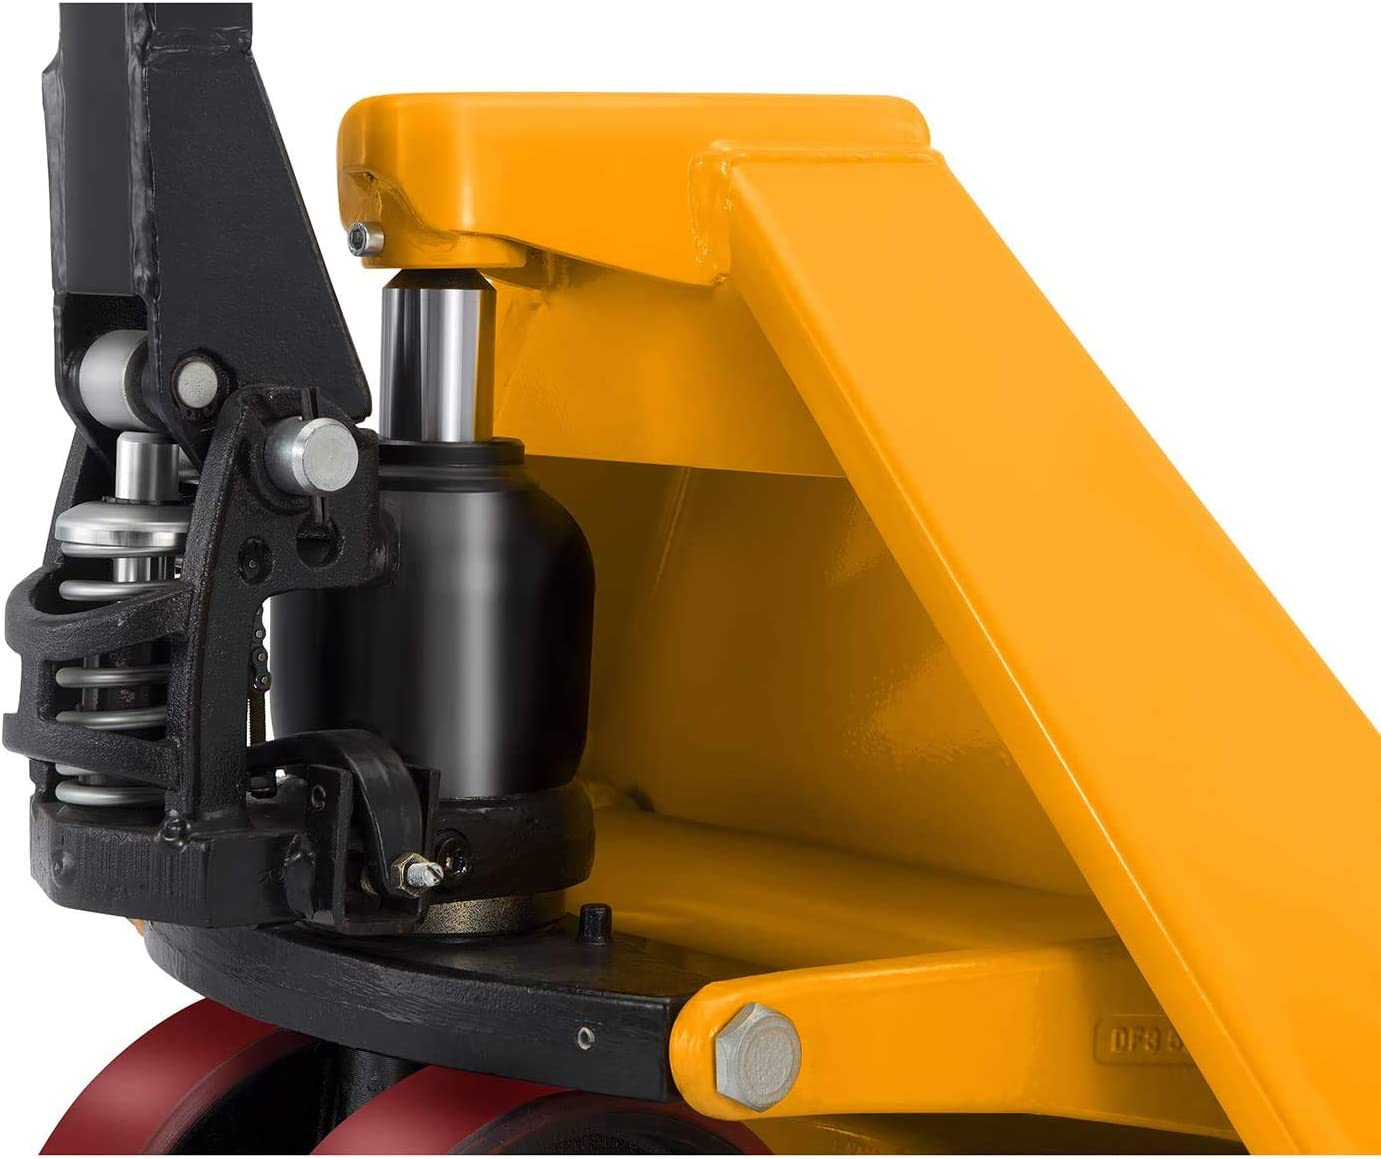 ApolloLift【Classical】 Manual Pallet Jack 5500lbs Capacity 48Lx21W Fork